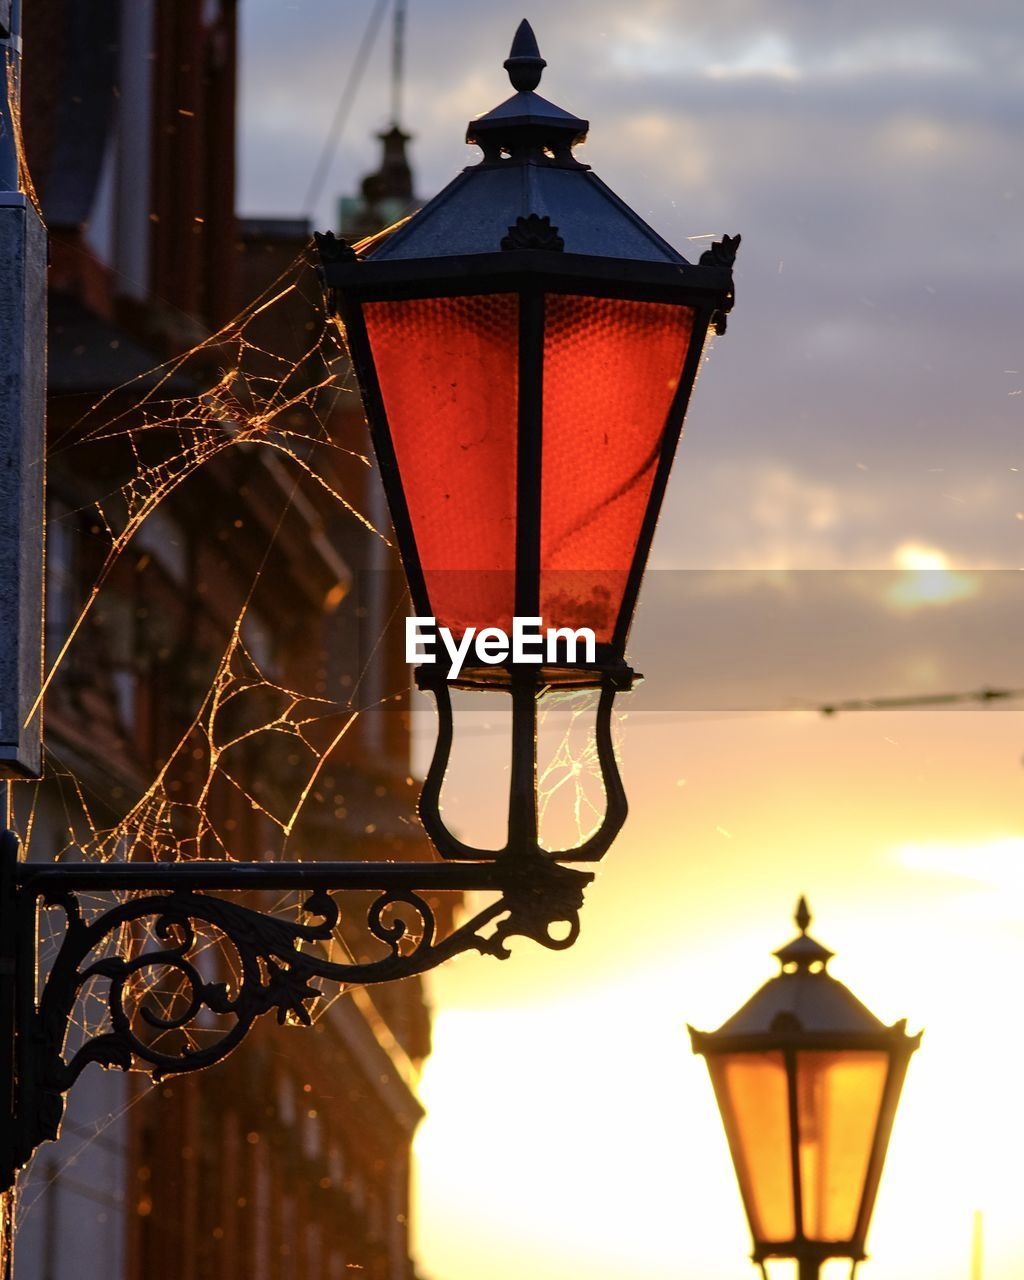 lighting equipment, street light, lantern, sky, illuminated, street, no people, focus on foreground, light, architecture, electric lamp, building exterior, electric light, nature, outdoors, gas light, low angle view, built structure, metal, electricity, antique, light fixture, electrical equipment, iron - metal, wrought iron